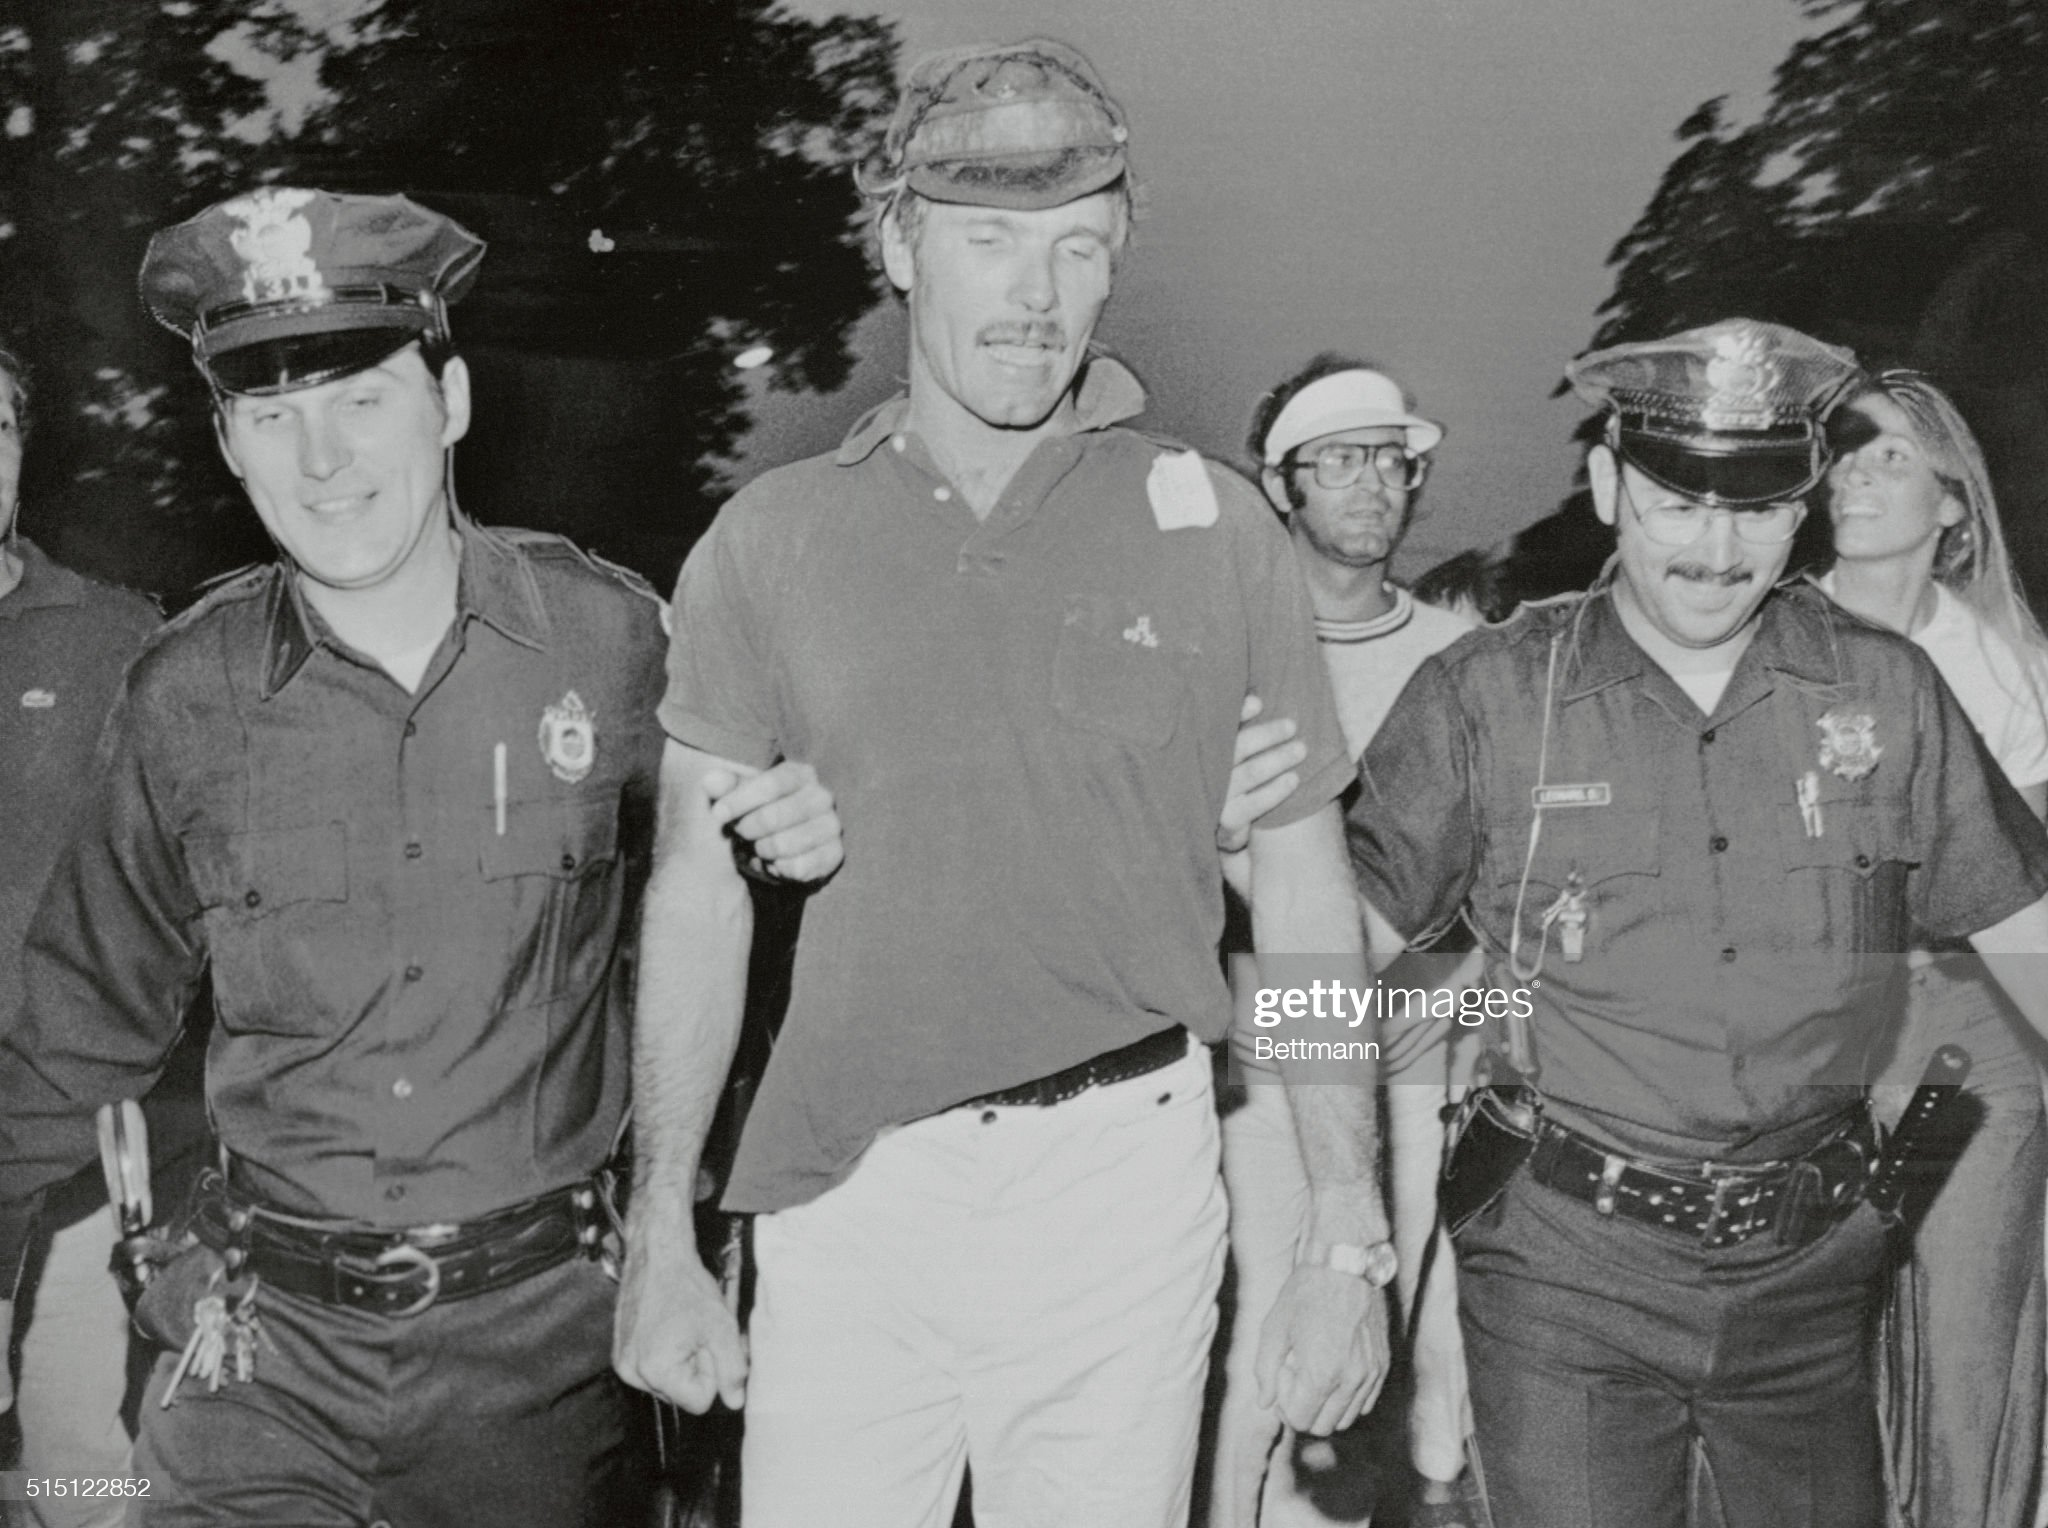 https://media.gettyimages.com/photos/two-of-newports-finest-happily-escort-courageous-skipper-ted-turner-picture-id515122852?s=2048x2048